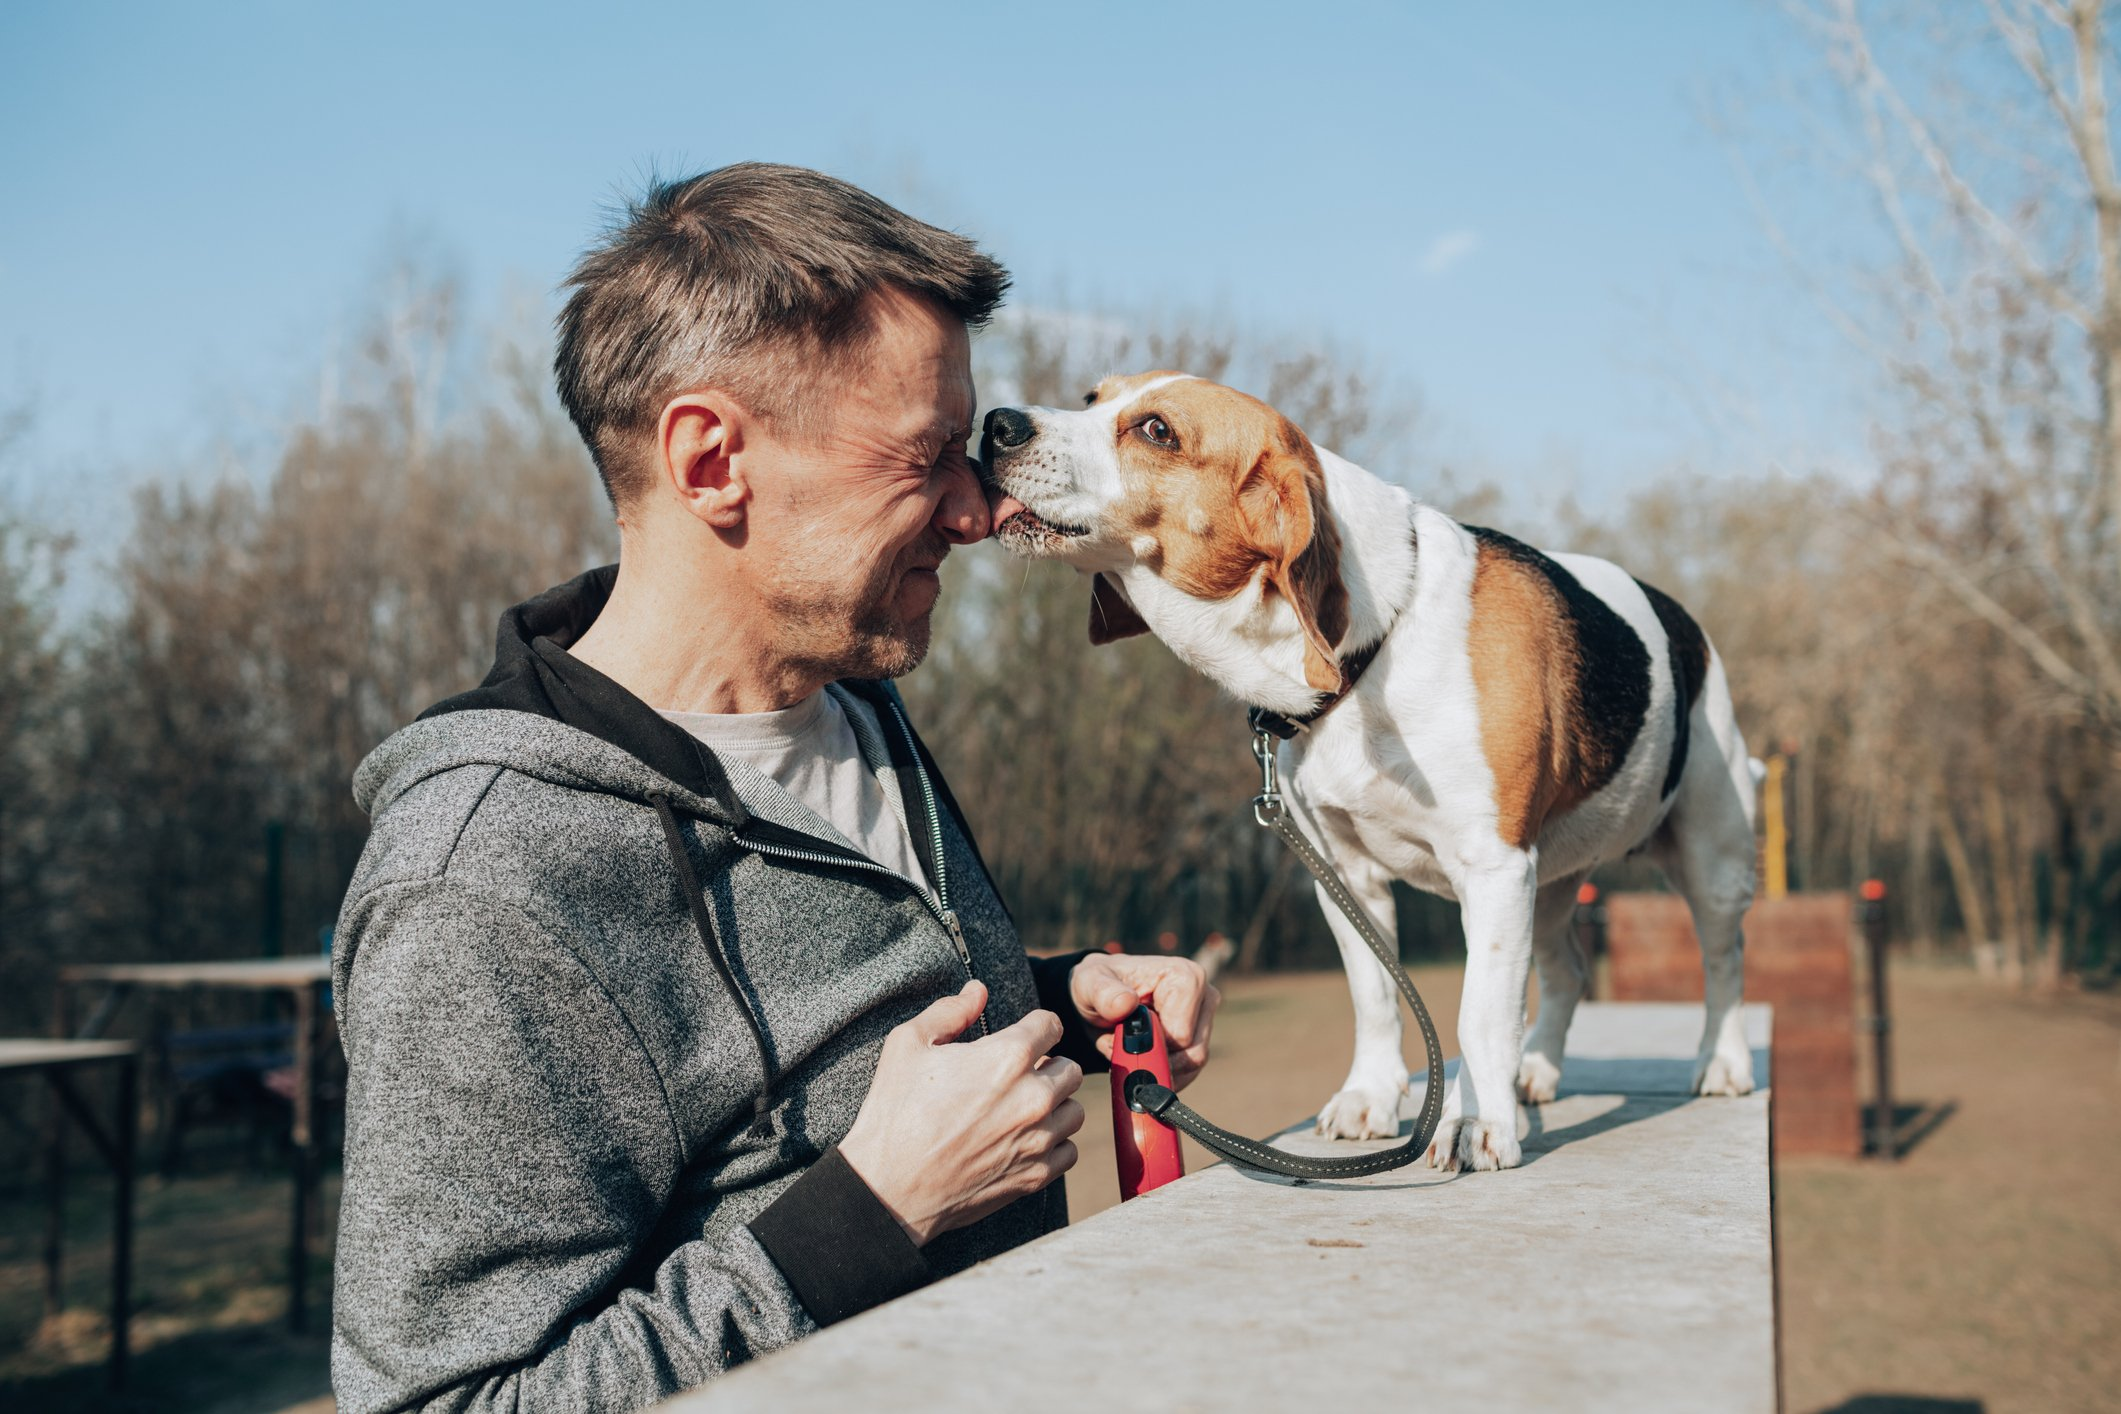 Mann und Beagle | Quelle: Getty Images